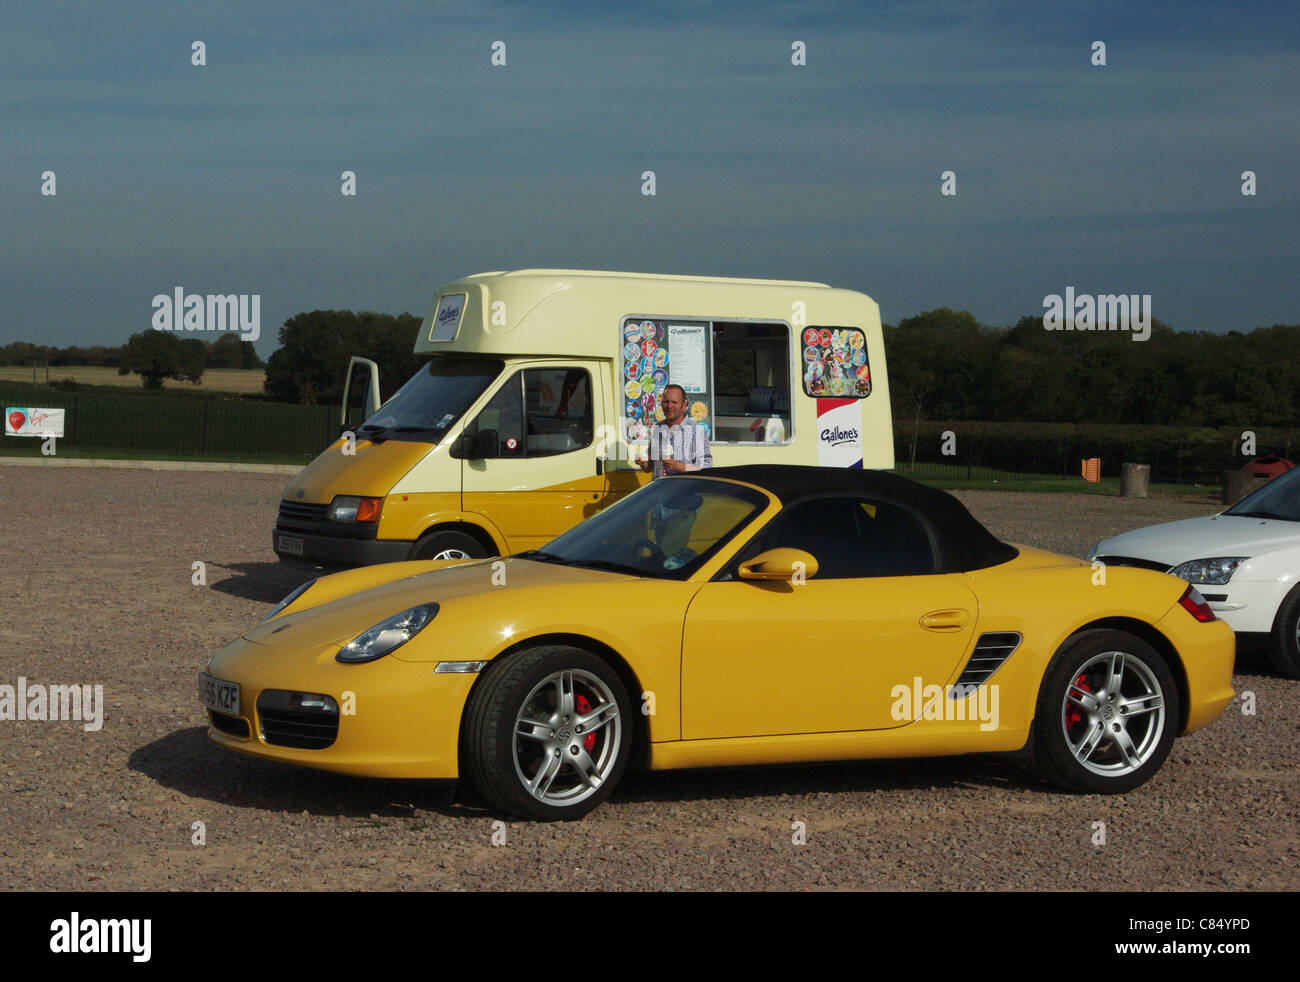 Porsche sports car in the foreground, ice cream van in the background, both in matching colours - Stock Image